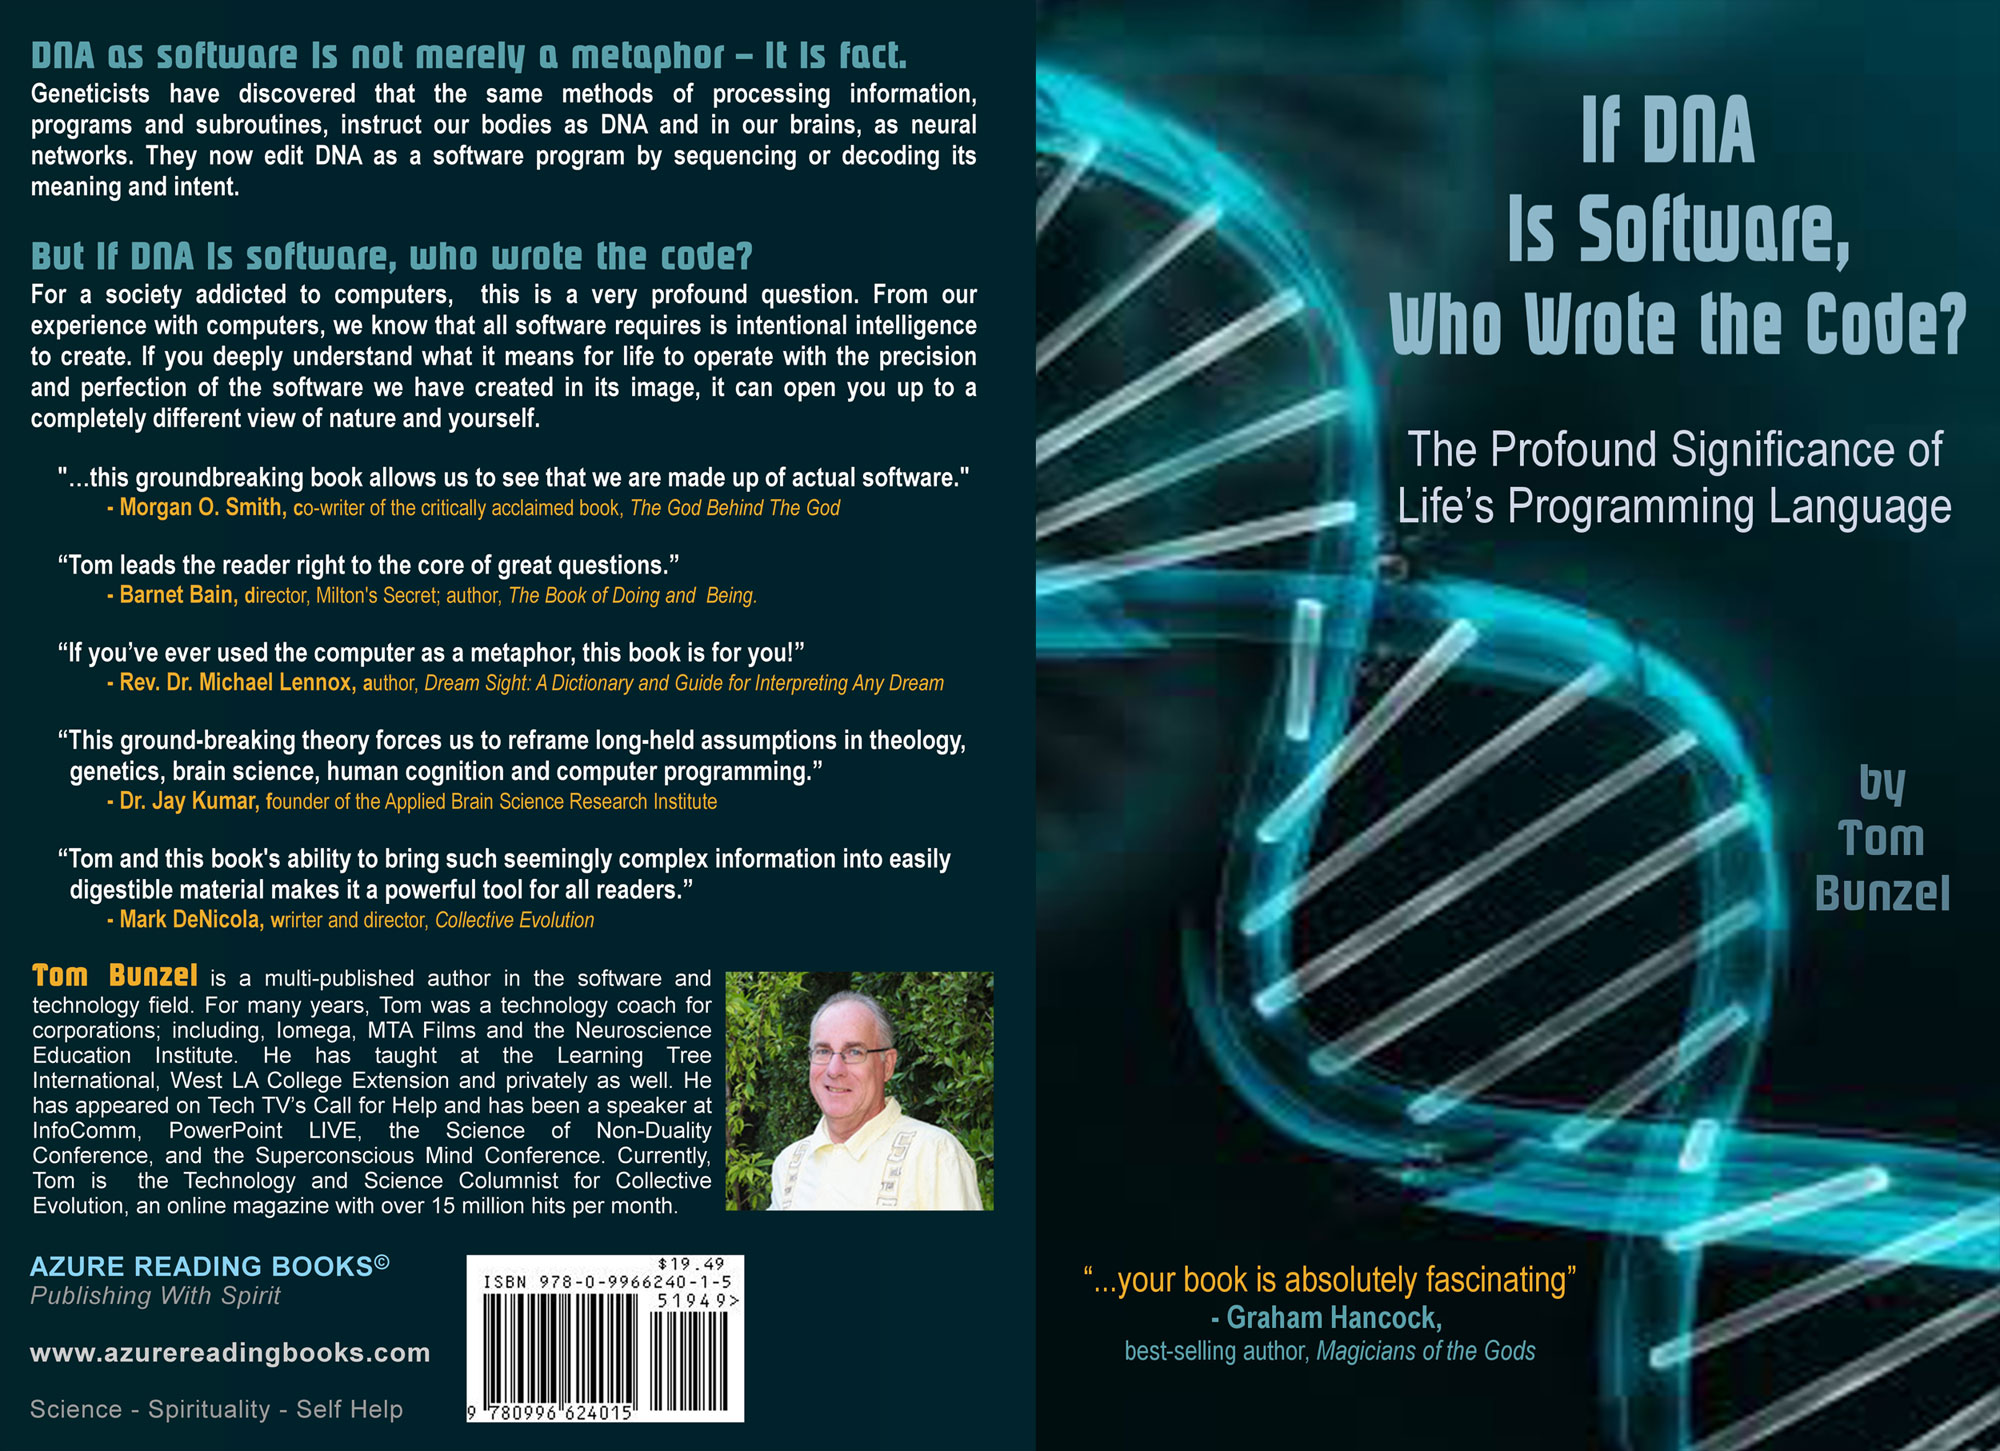 If DNA Is Software, Who Wrote The Code? Code